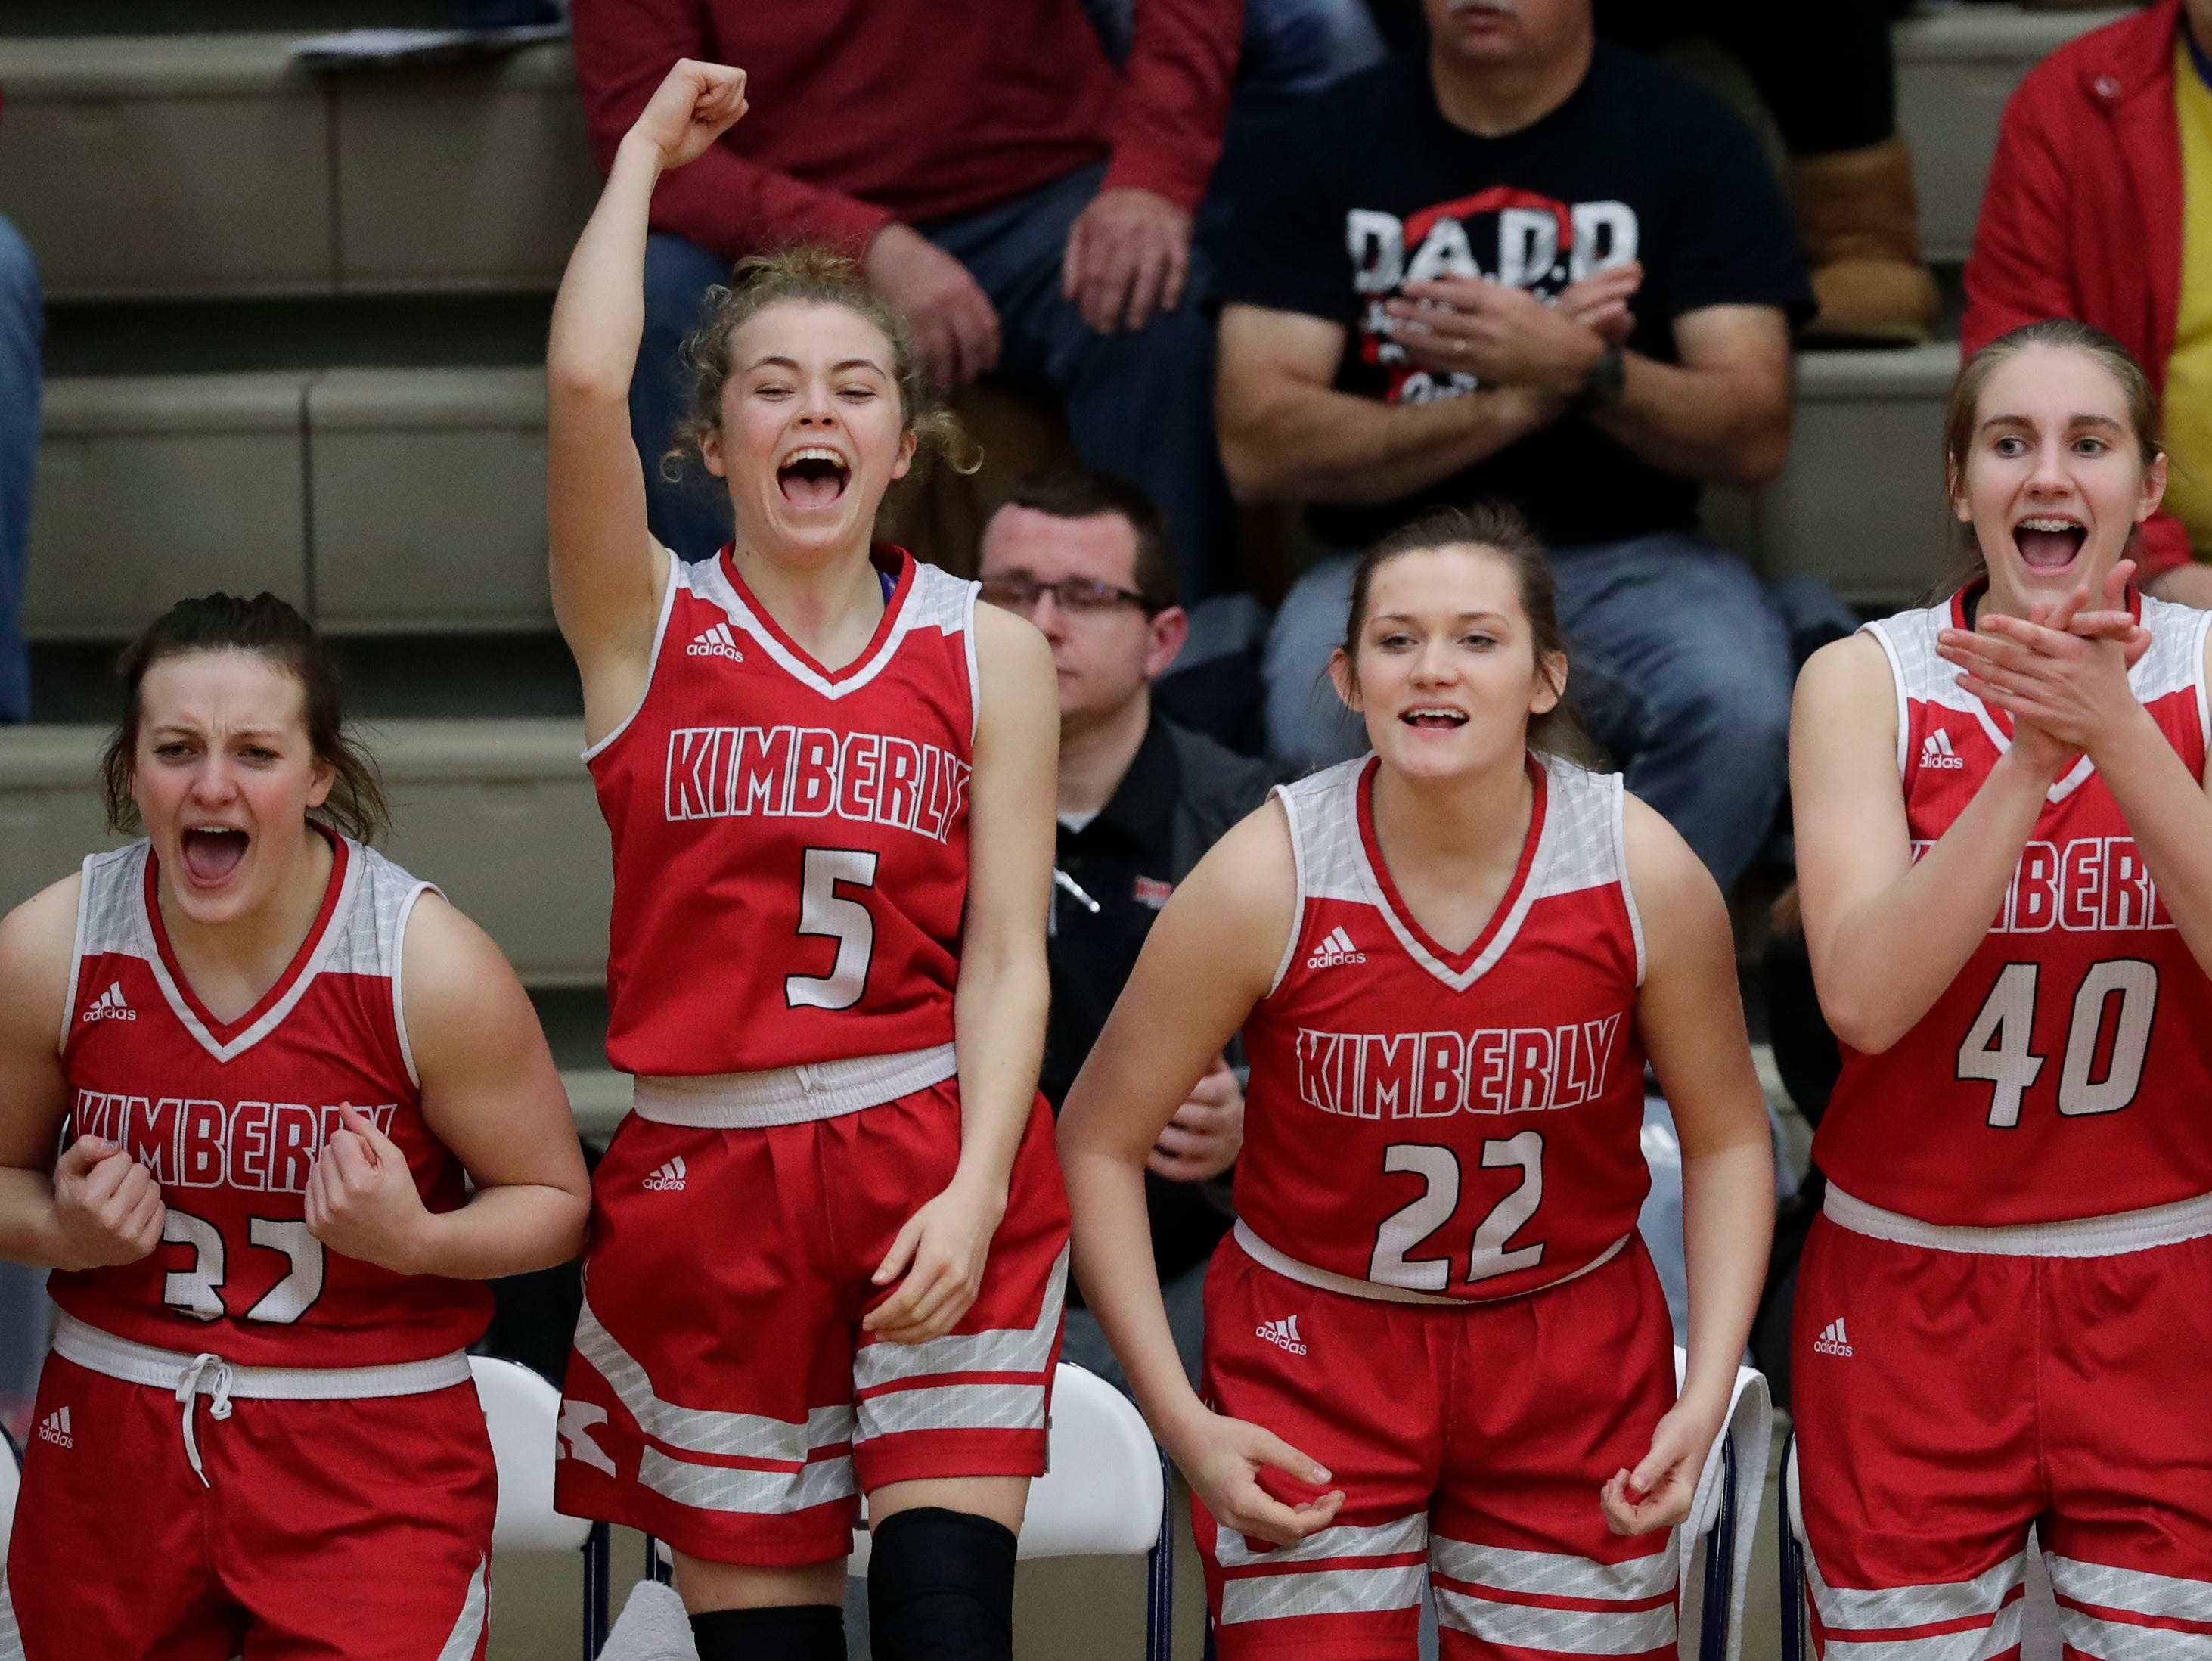 Kimberly High School's Emma Kilatrick (32), Paige Cullen (5), Kennedy Litvinoff (22) and Kayla Behnke (40) cheer for their teammates after a basket scored against Appleton North High School during their girls basketball game Tuesday, January 8, 2019, in Appleton, Wis. Dan Powers/USA TODAY NETWORK-Wisconsin